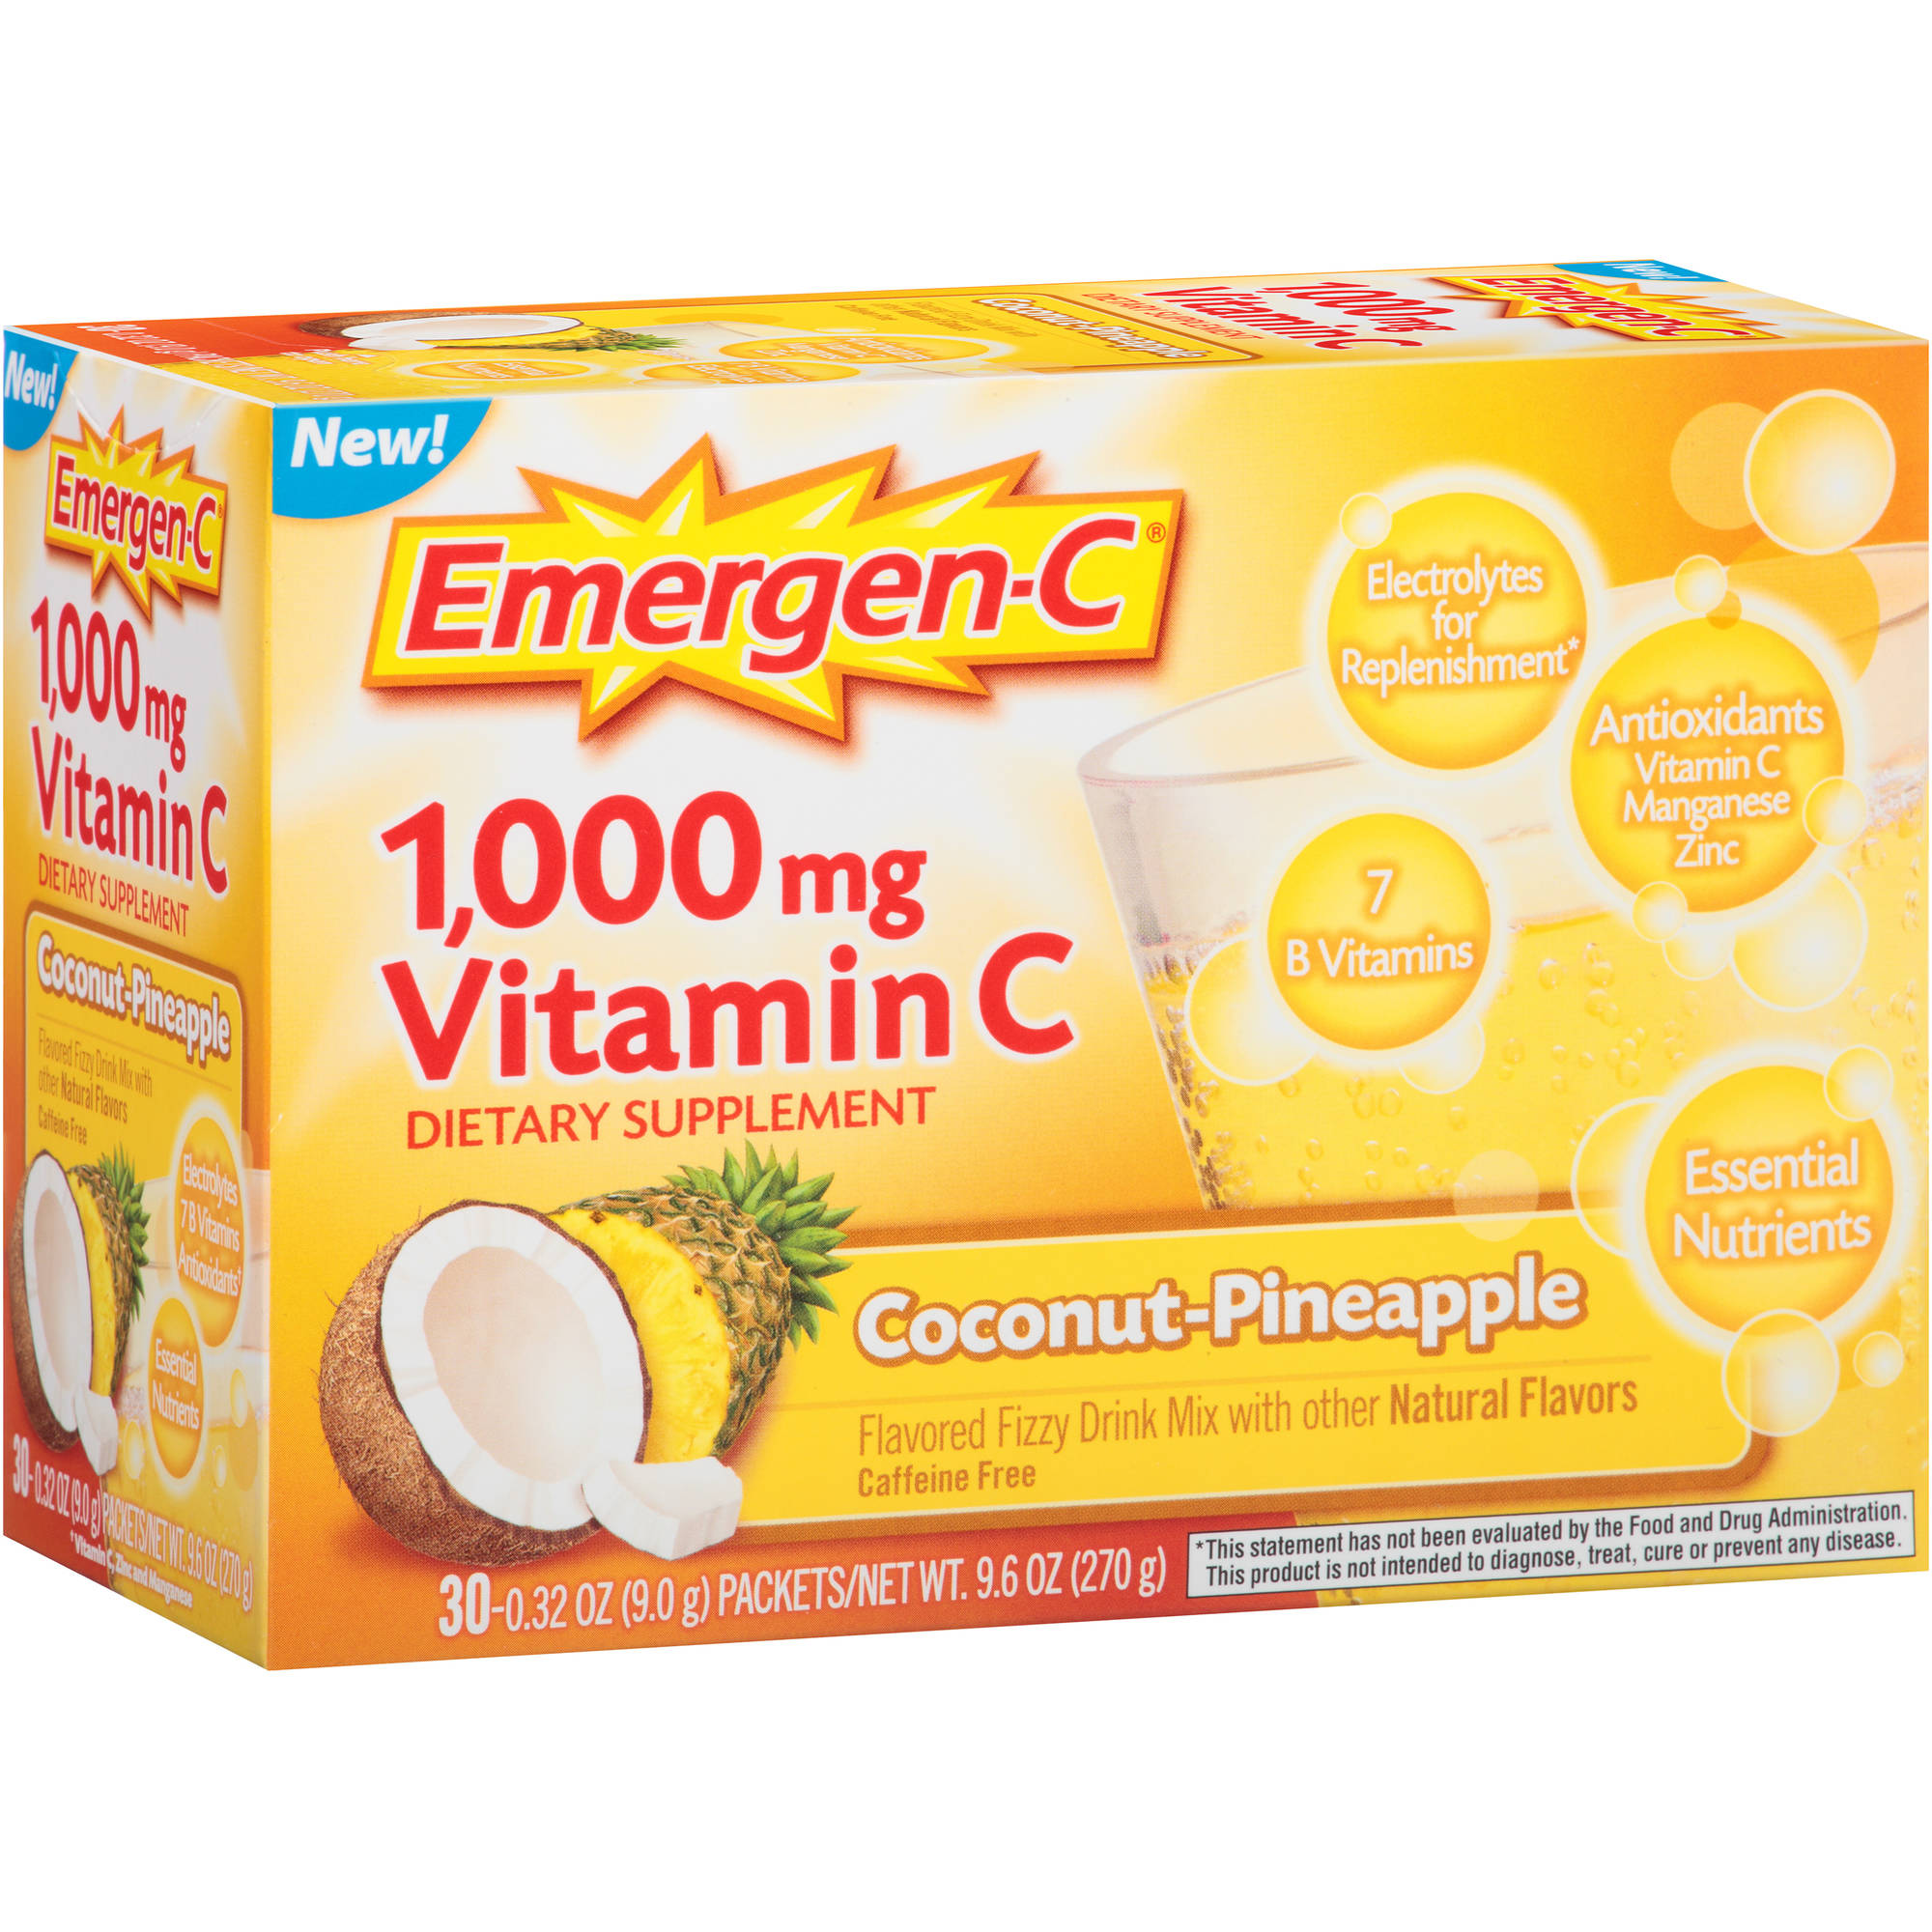 Emergen-C-Coconut Pineapple Alacer 24 Packets Box